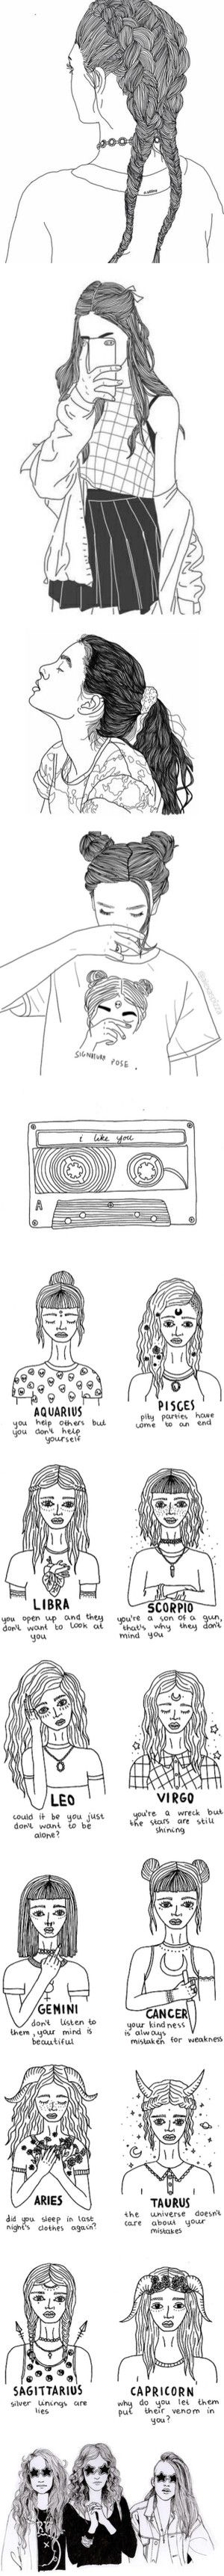 """""""Black and White Doodles/Sketches - Pt. 1"""" by guedesss ❤ liked on Polyvore"""